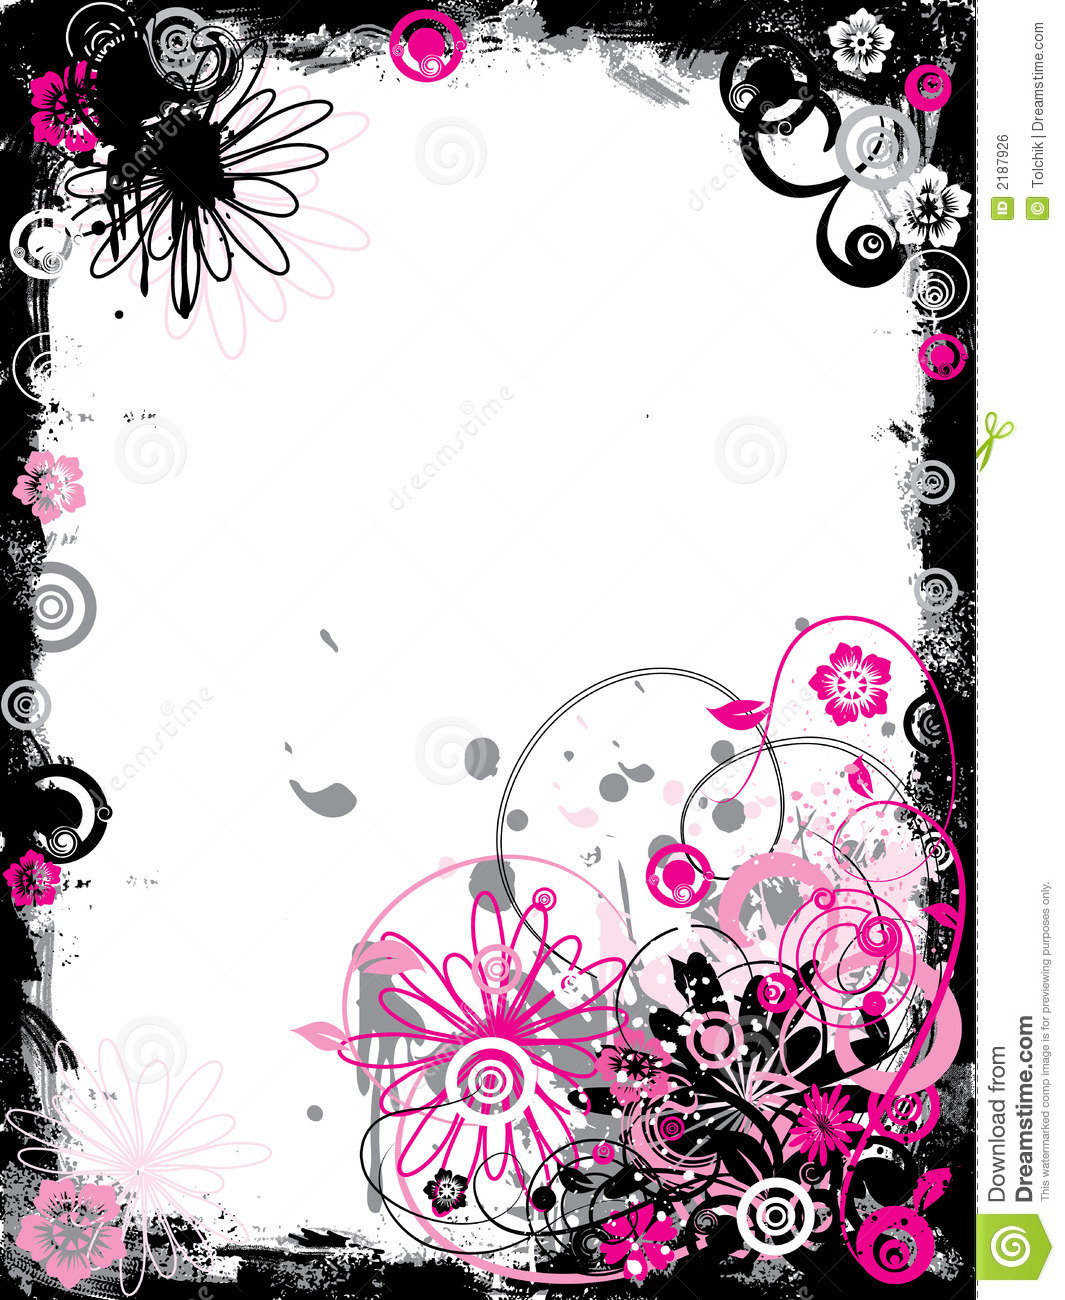 20 Floral Border Vector Images